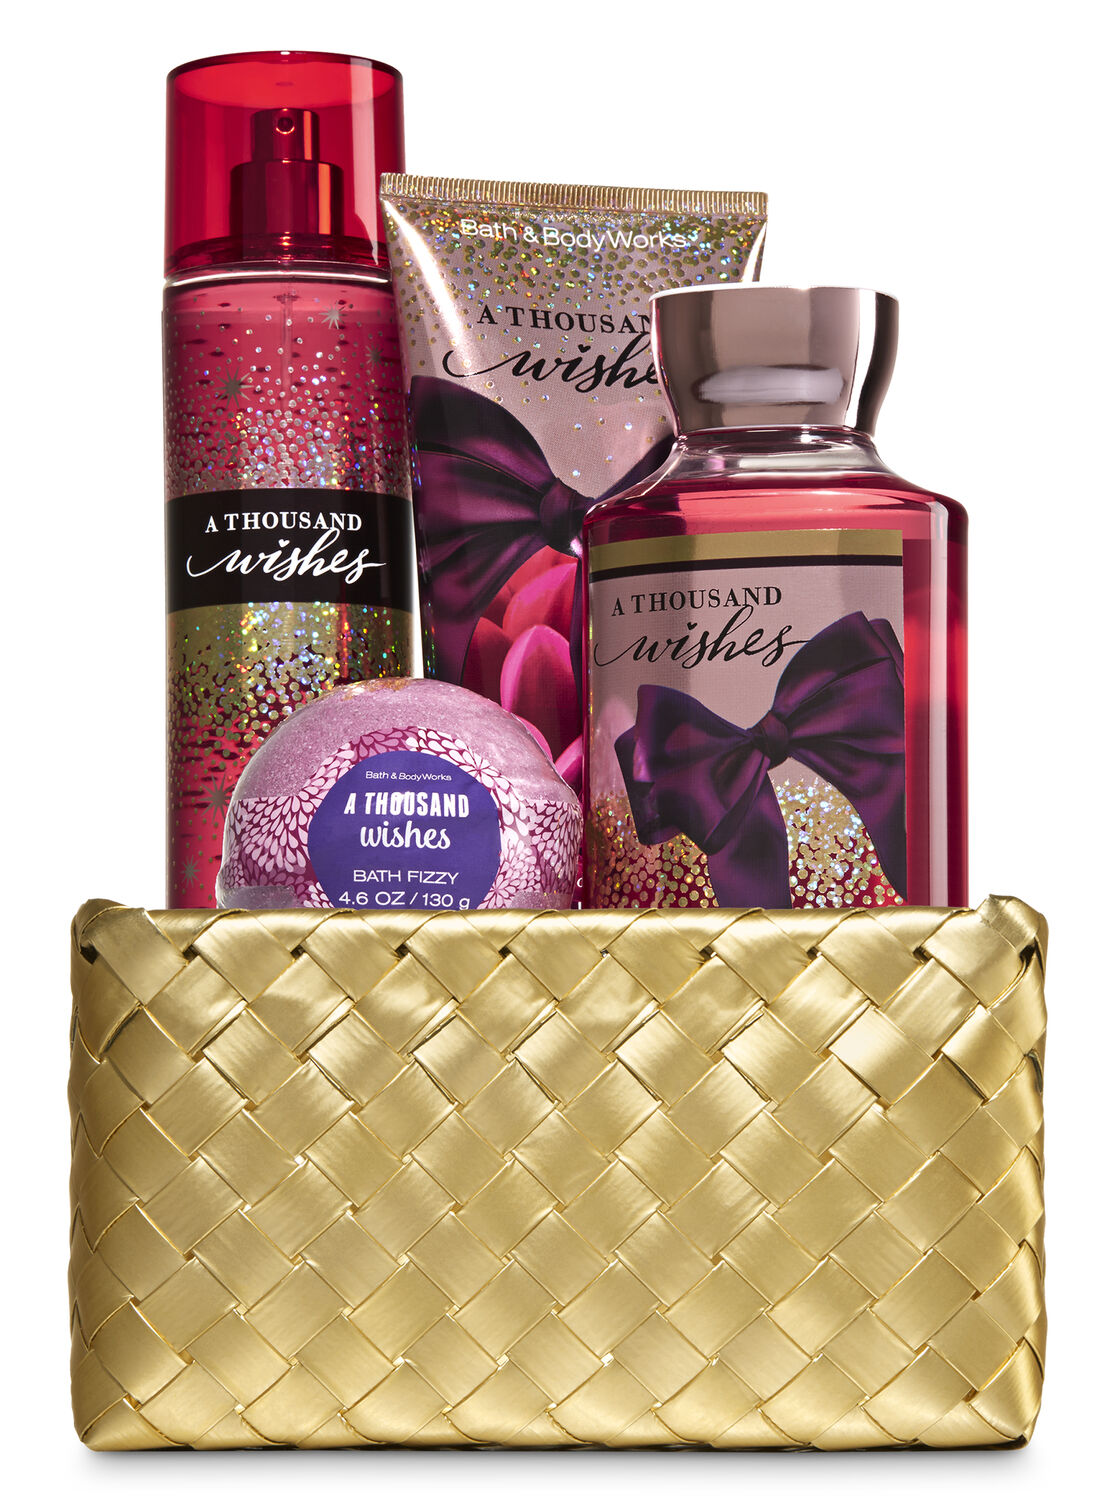 A Thousand Wishes Gold Woven Basket Gift Kit | Bath & Body Works